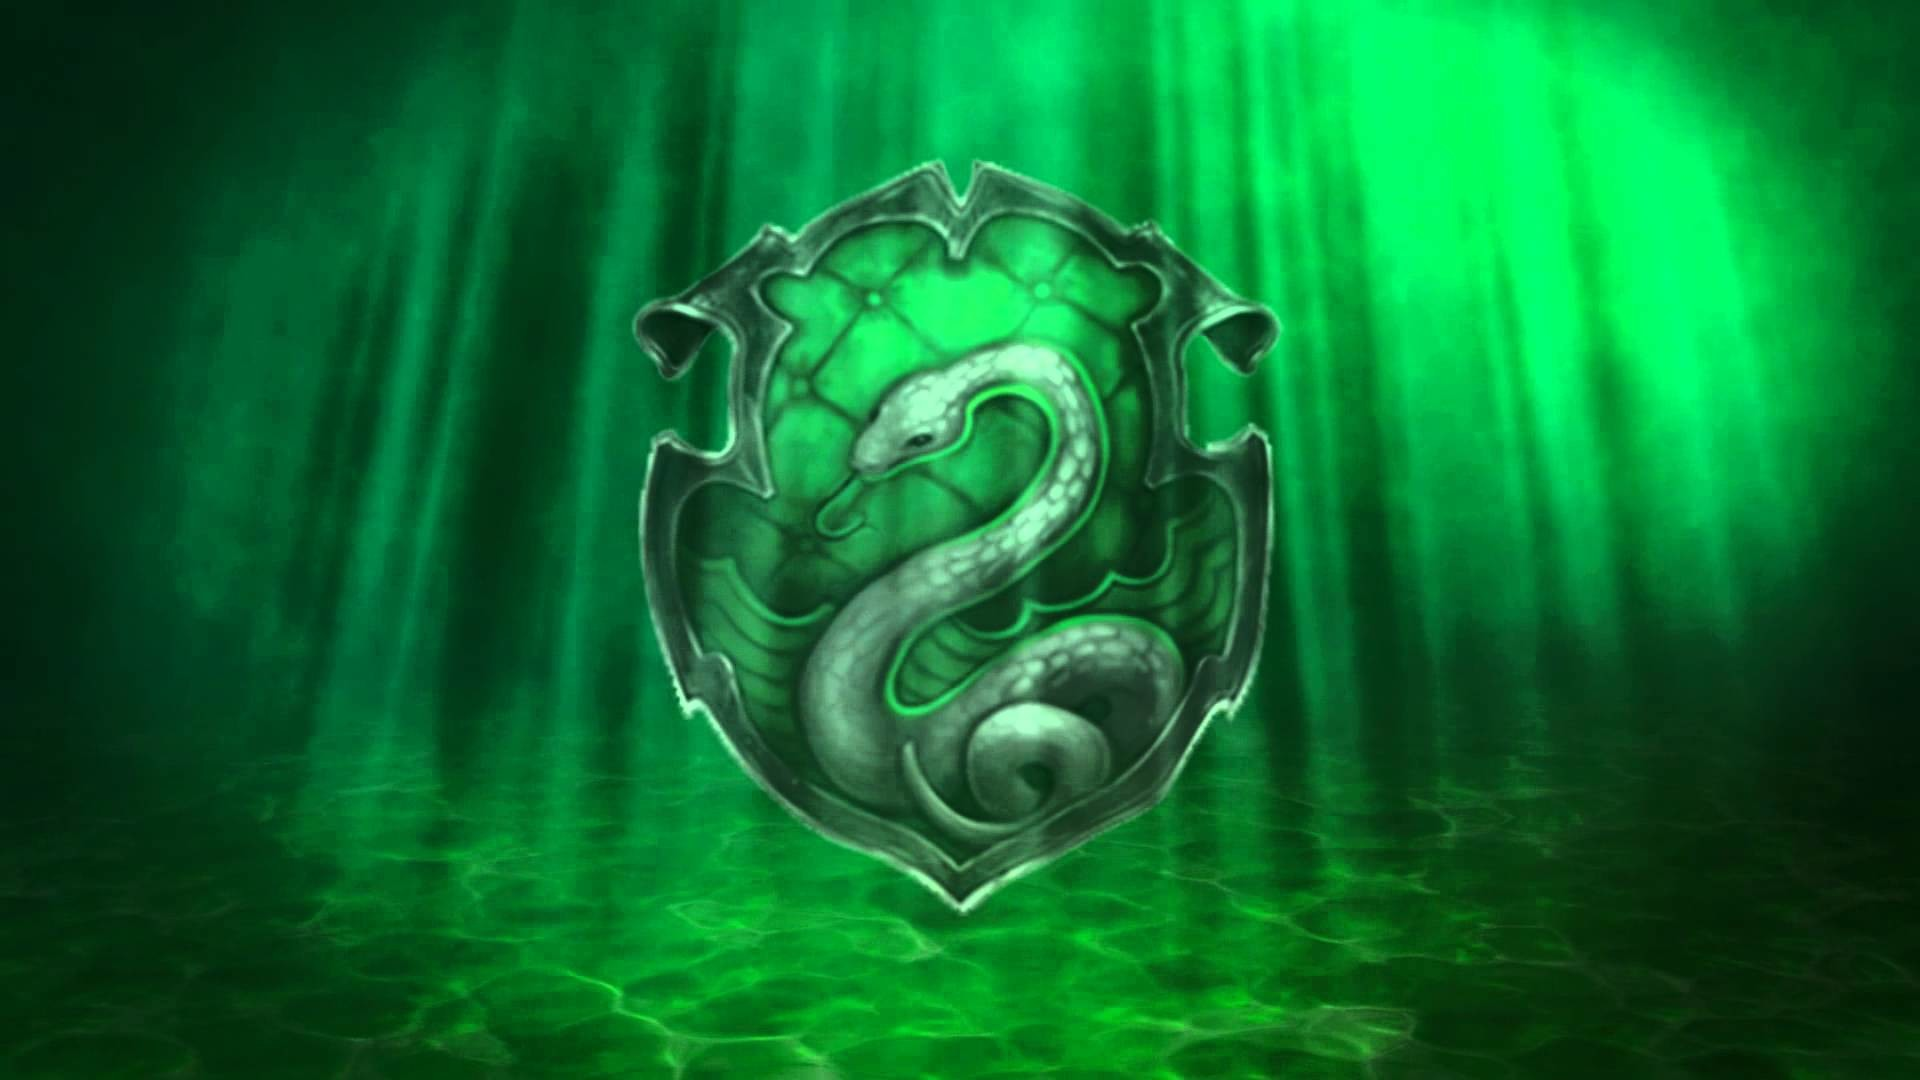 Water Wallpaper Hd Live Hd Slytherin Wallpaper 78 Images